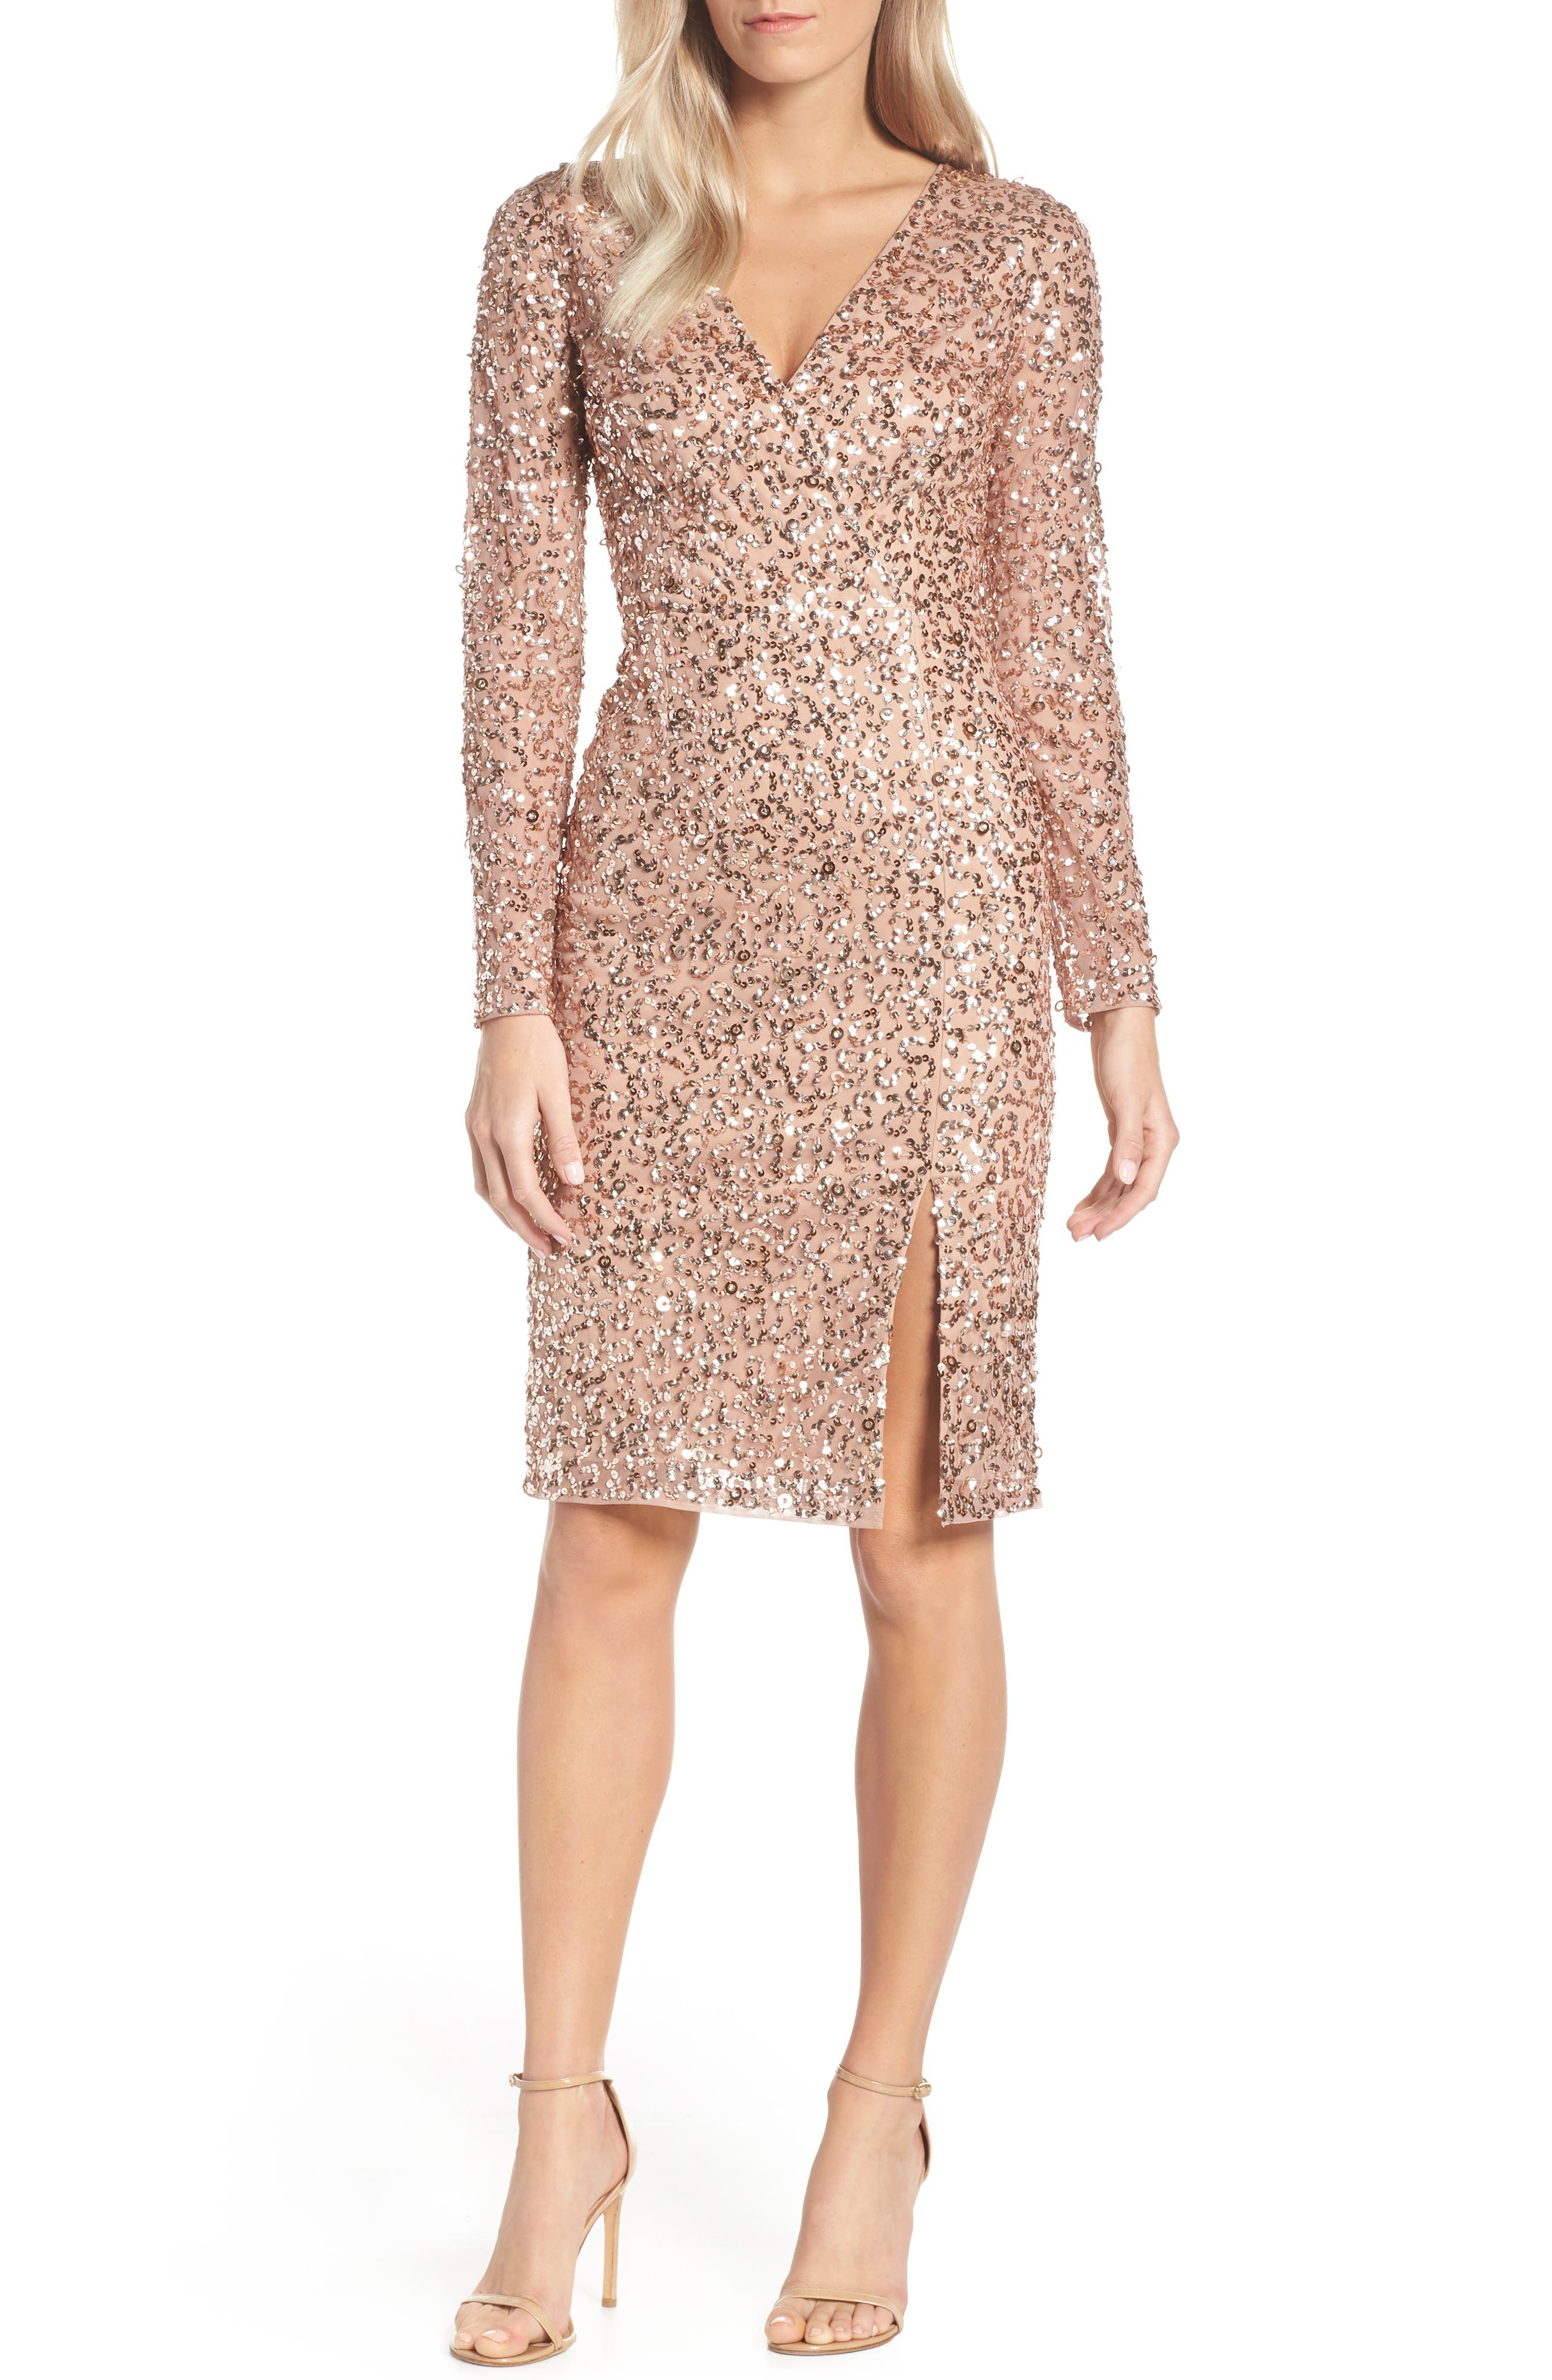 ADRIANNA PAPELL Beaded Mesh Cocktail Dress, Main, color, 680